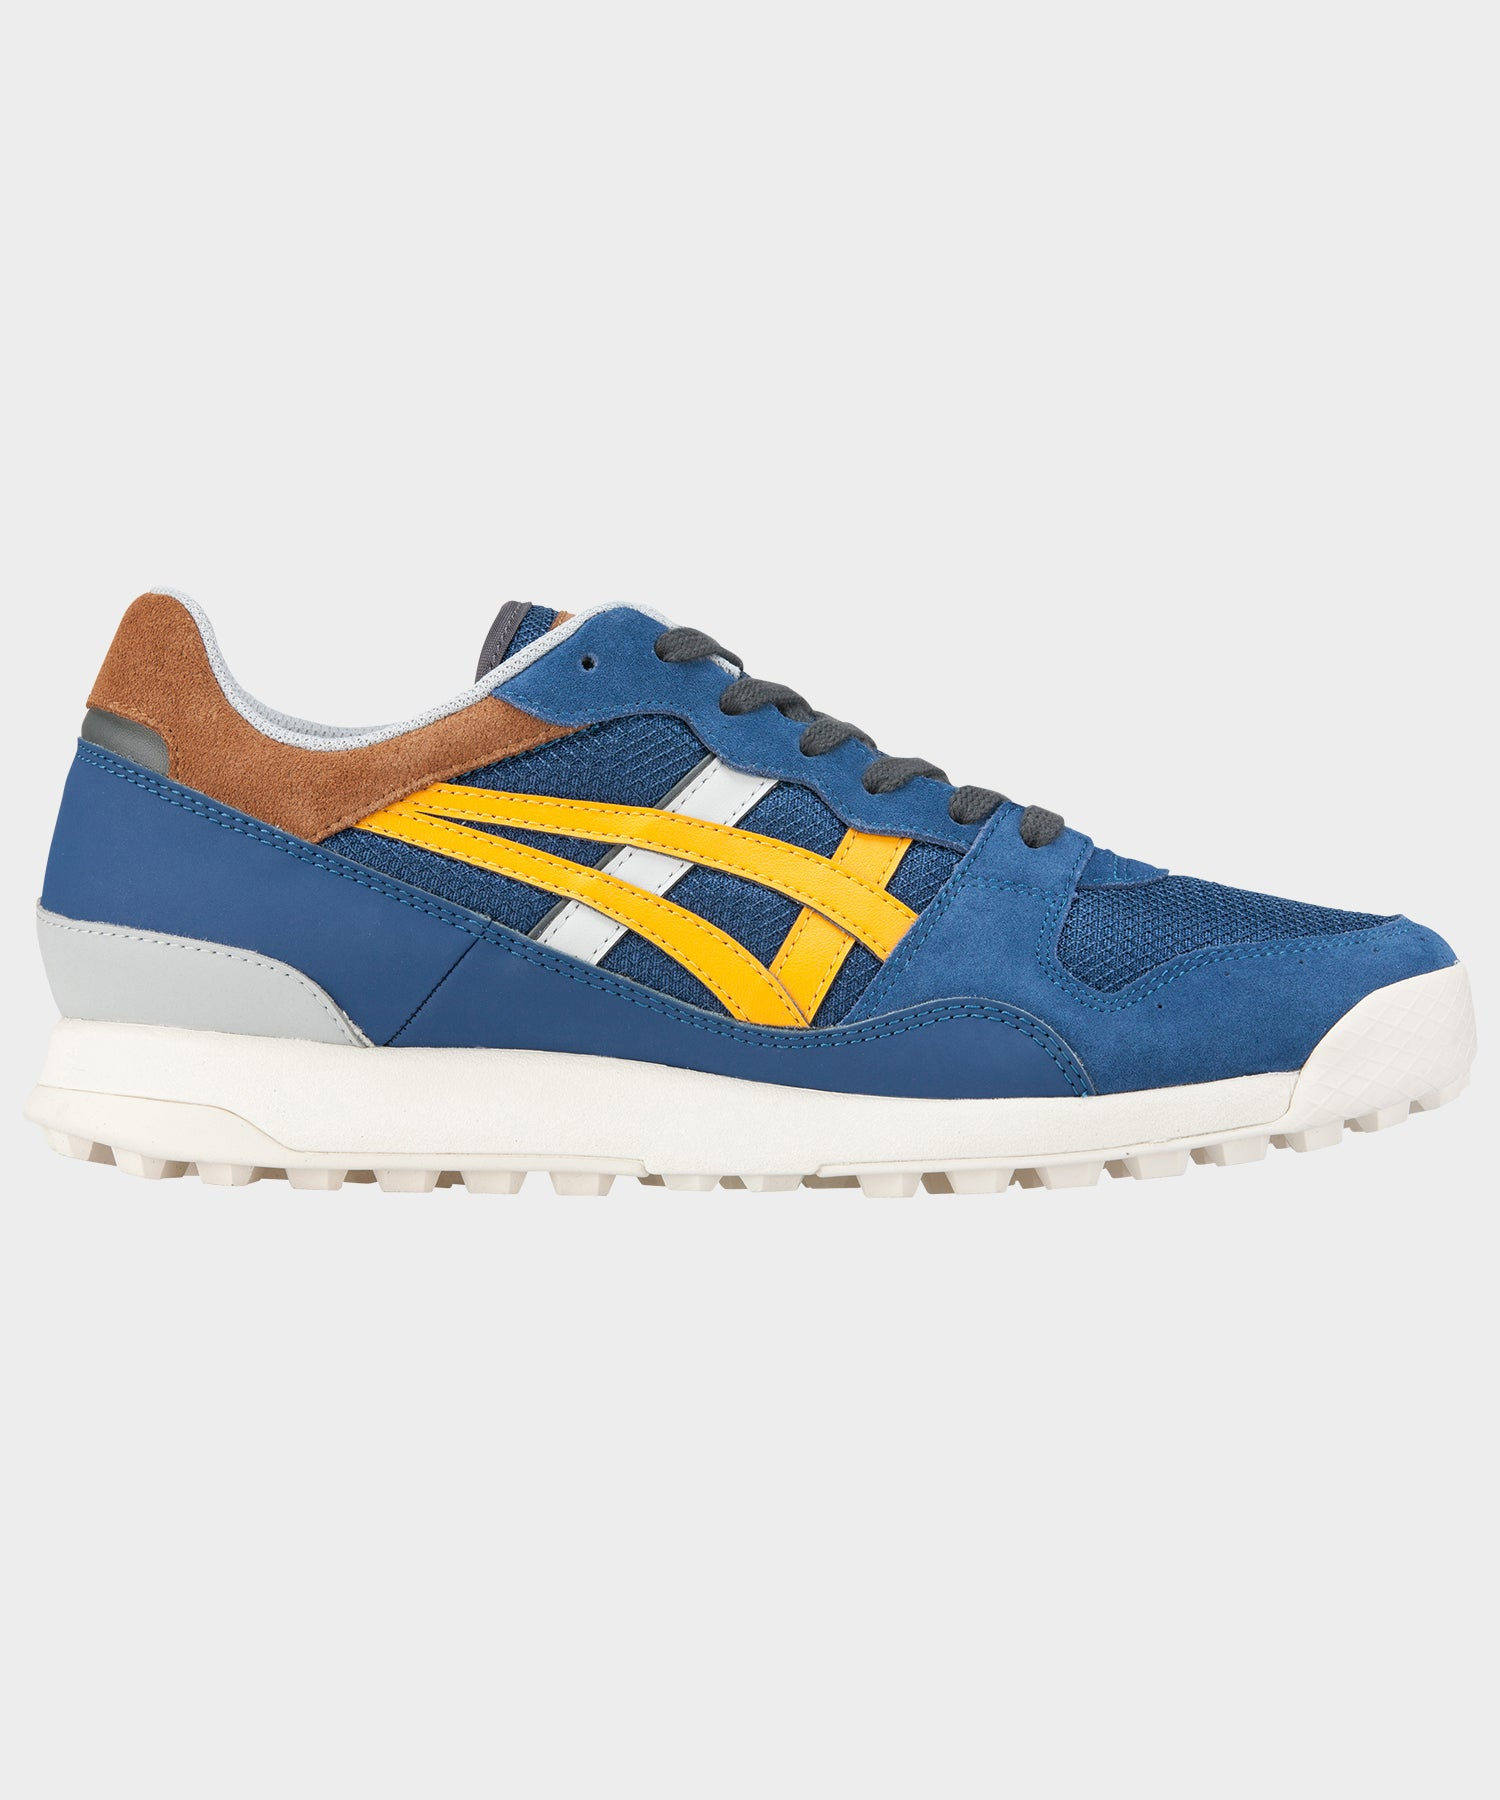 Onitsuka Tiger Horizonia in Navy